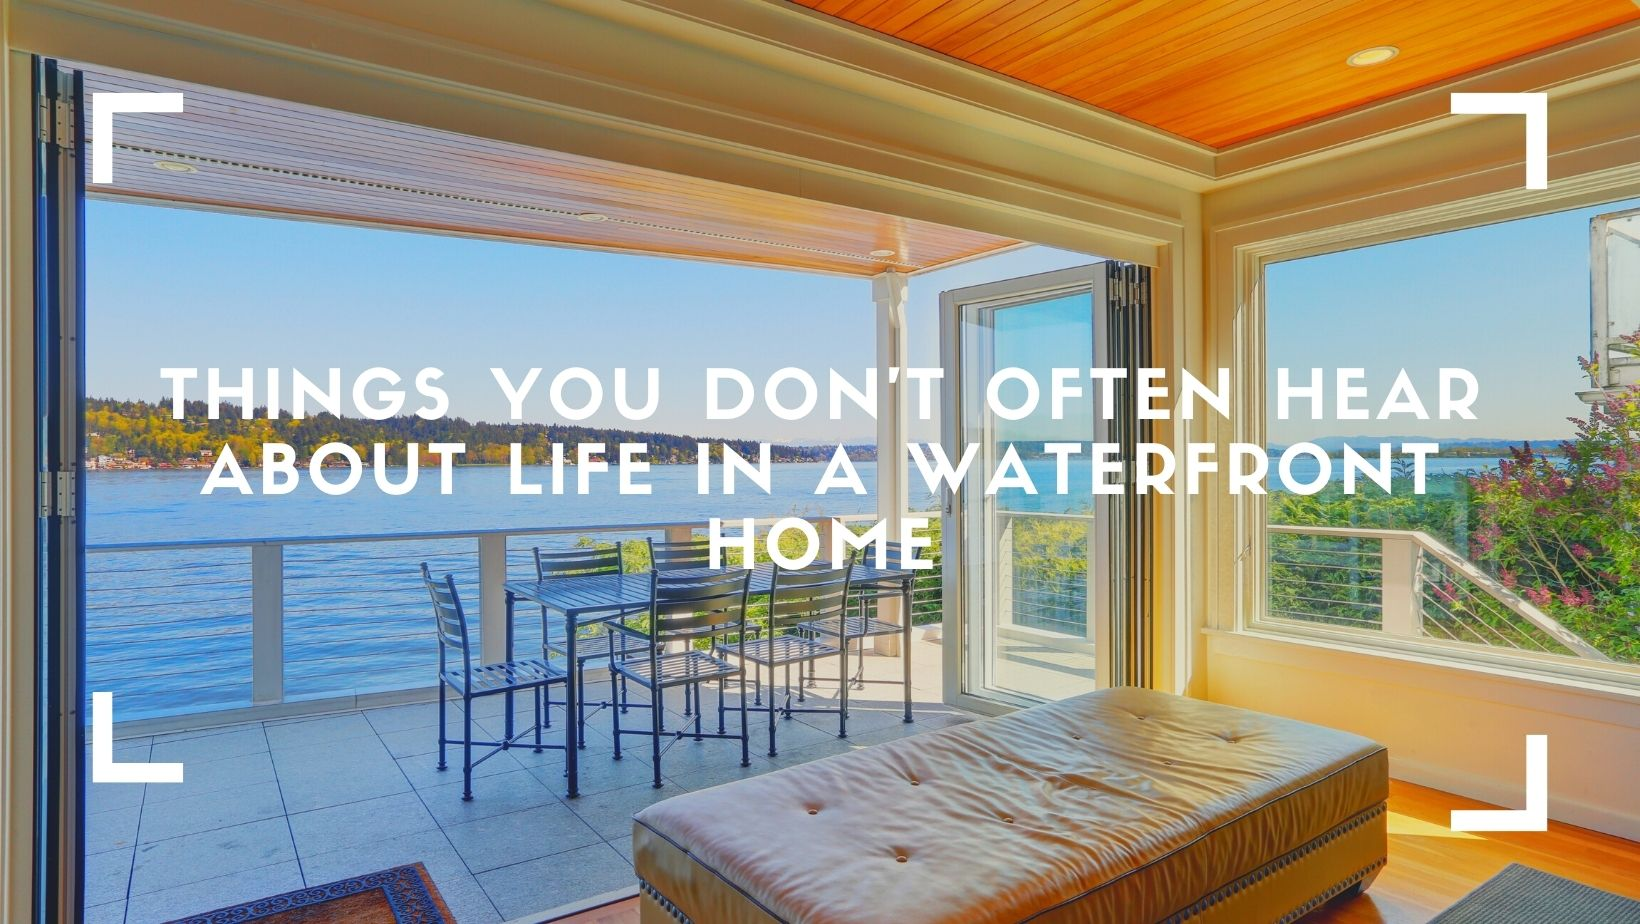 Things You Don't Often Hear About Life in a Waterfront Home